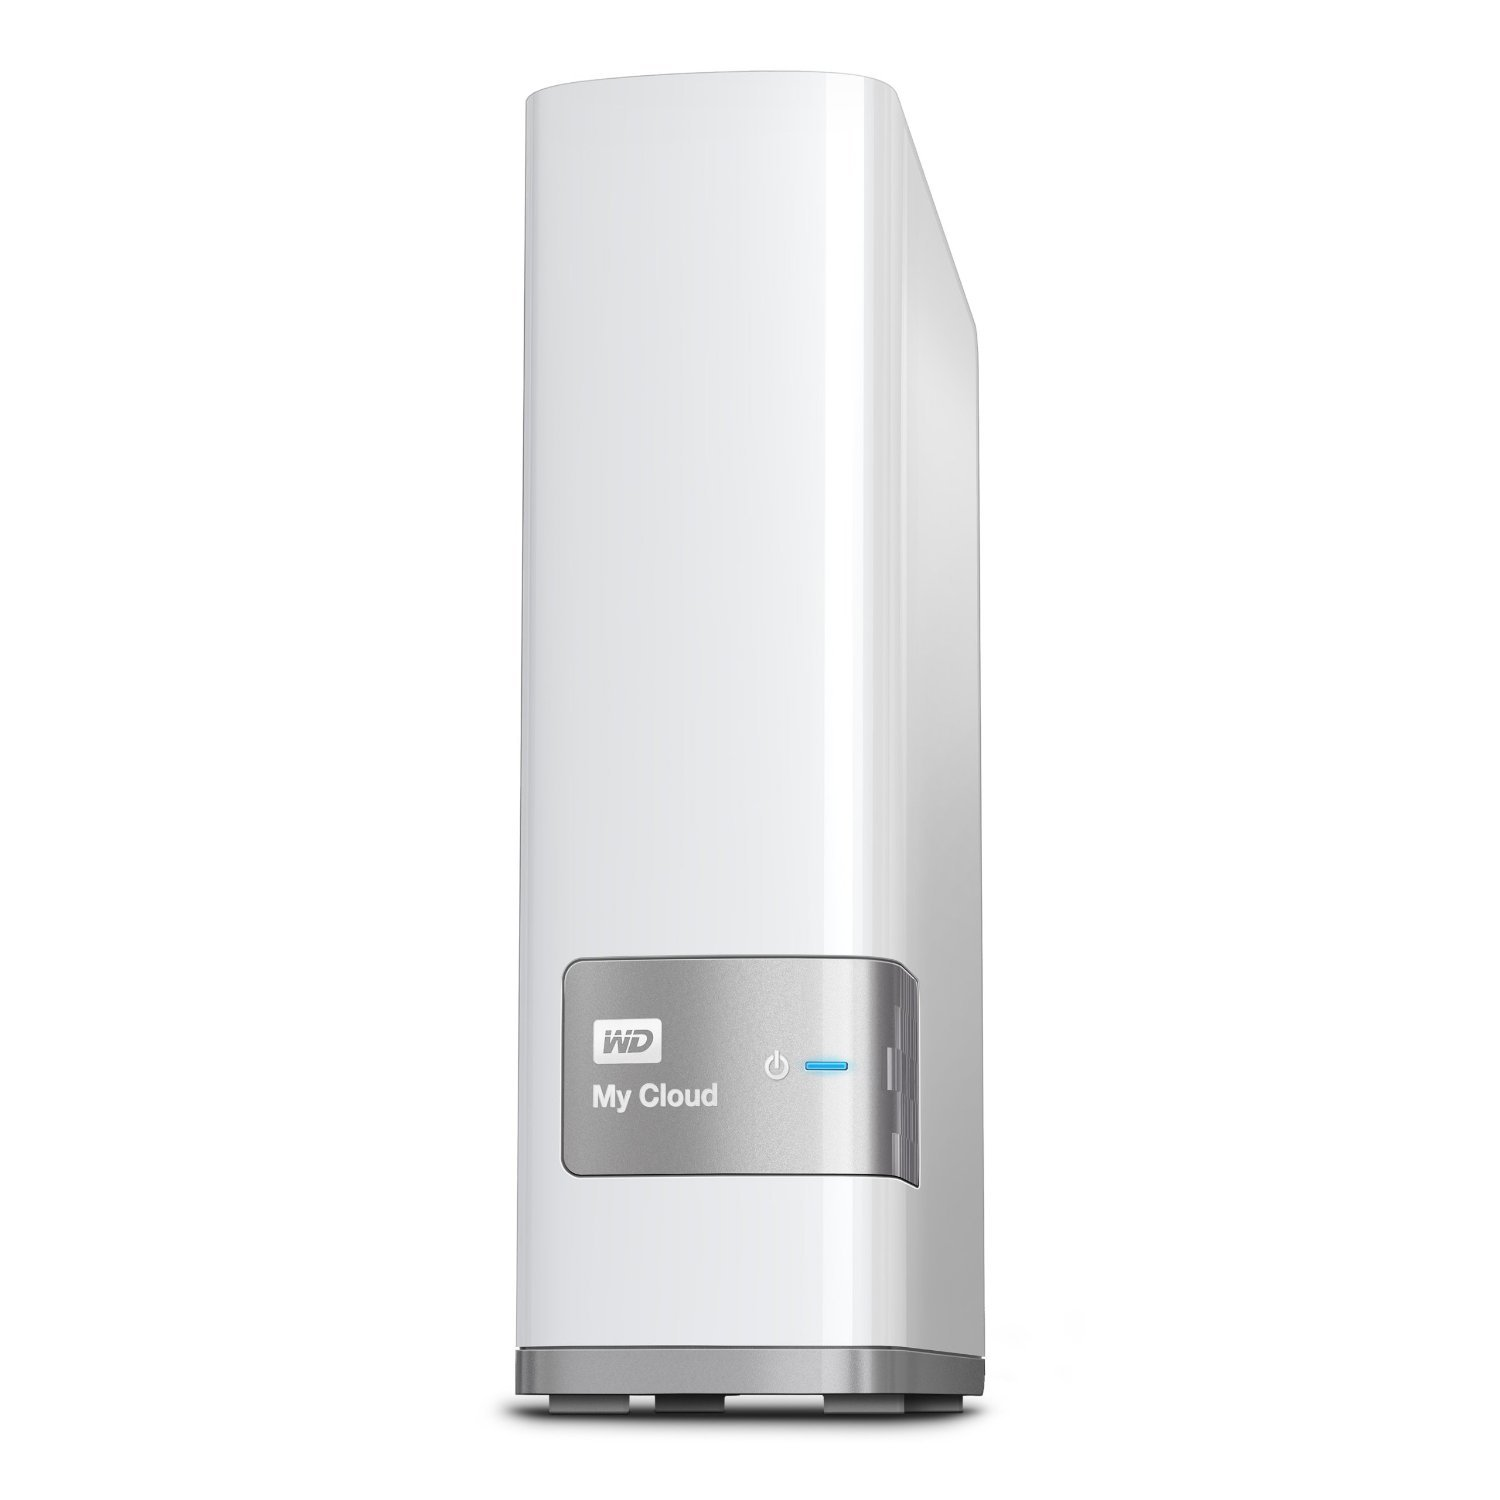 WD 4TB My Cloud Personal Network Attached Storage - NAS - WDBCTL0040HWT-NESN